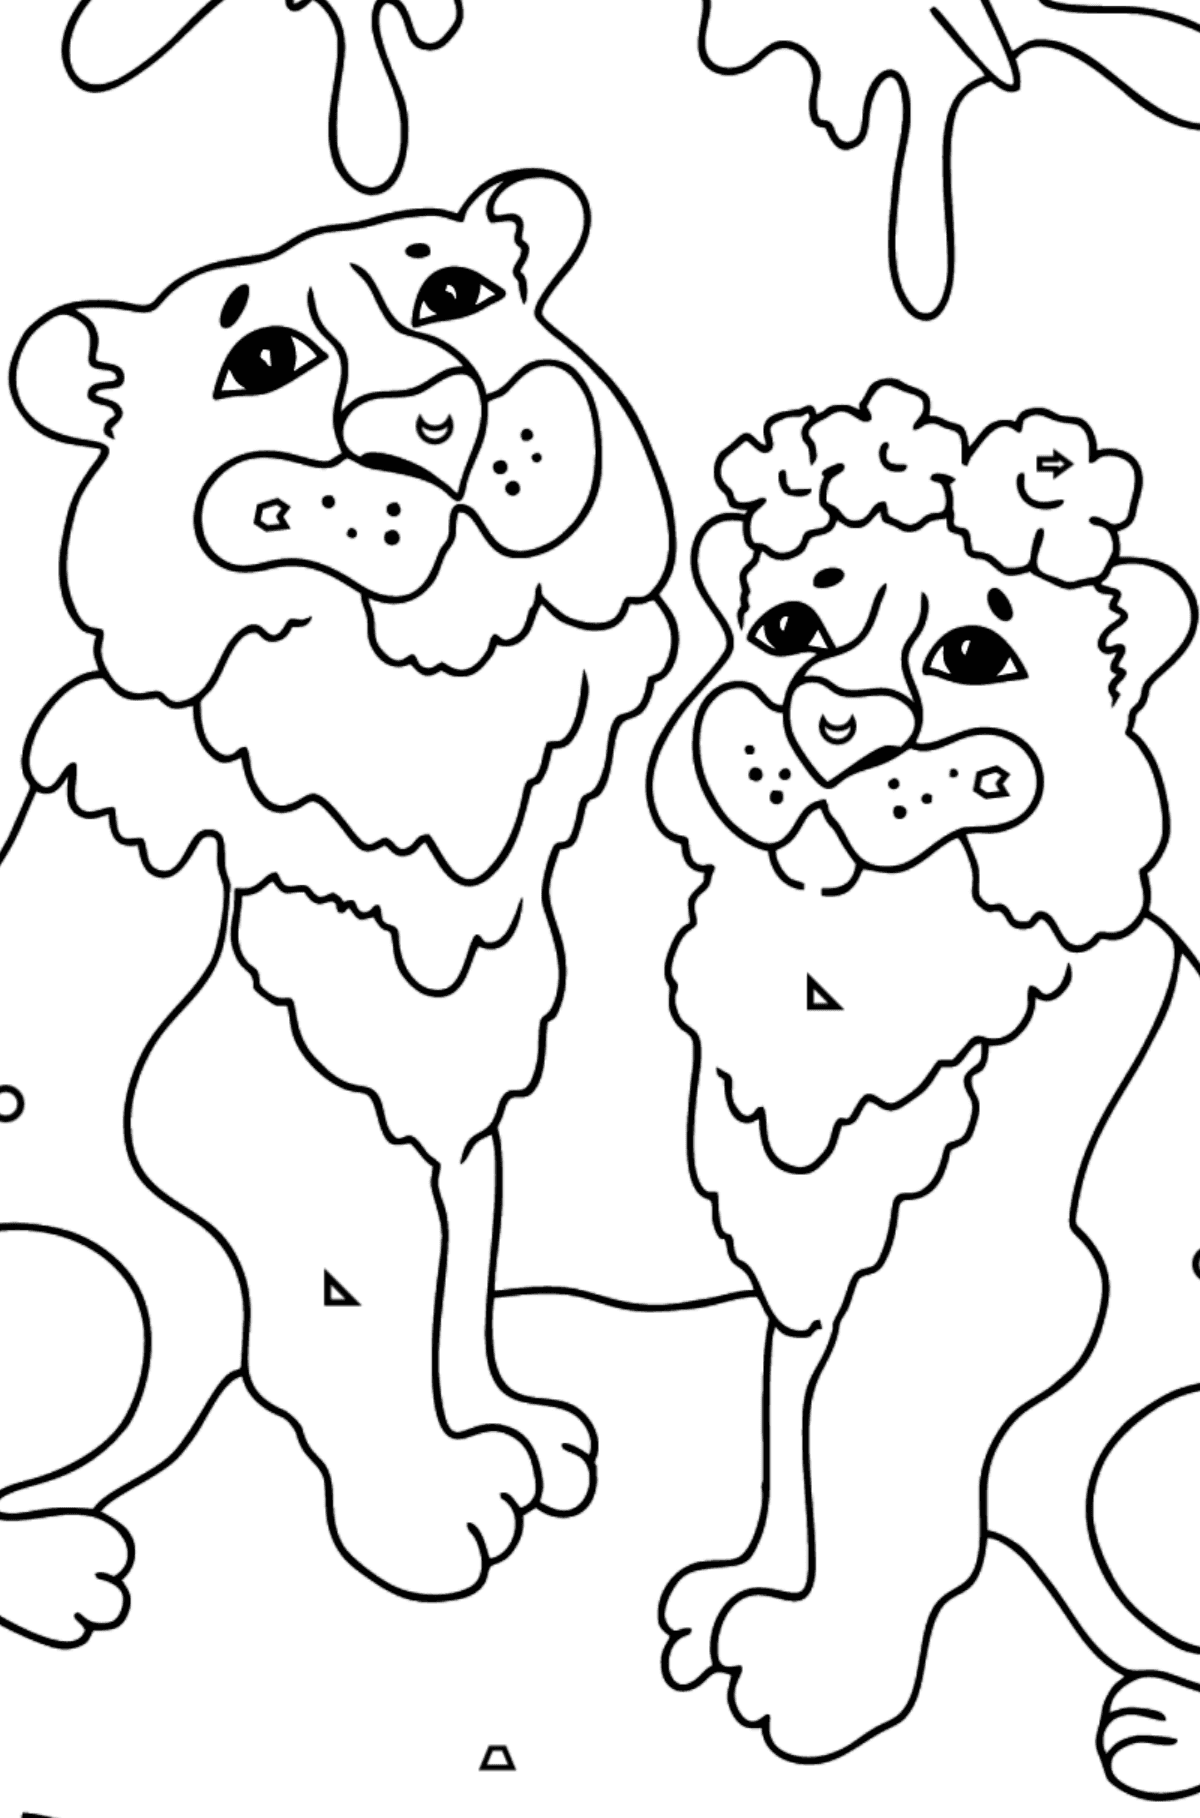 Coloring Page - A Tiger with a Tigress - Coloring by Geometric Shapes for Kids